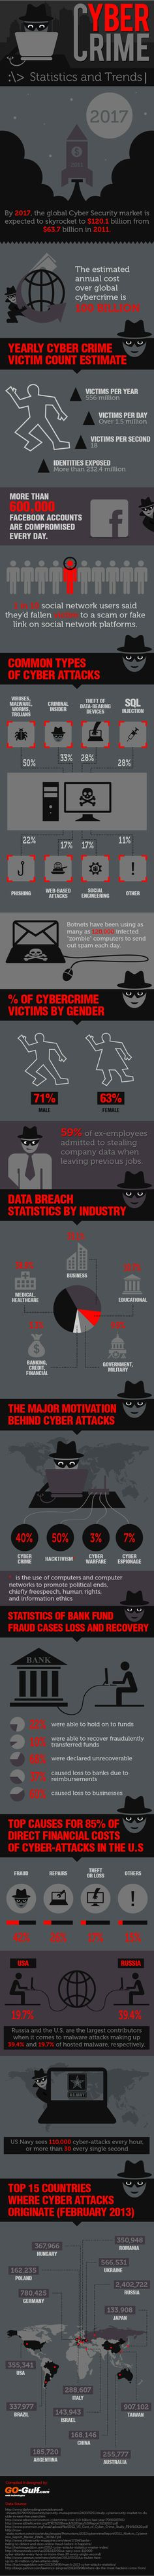 Cybercrime: statistics and trends #infographic